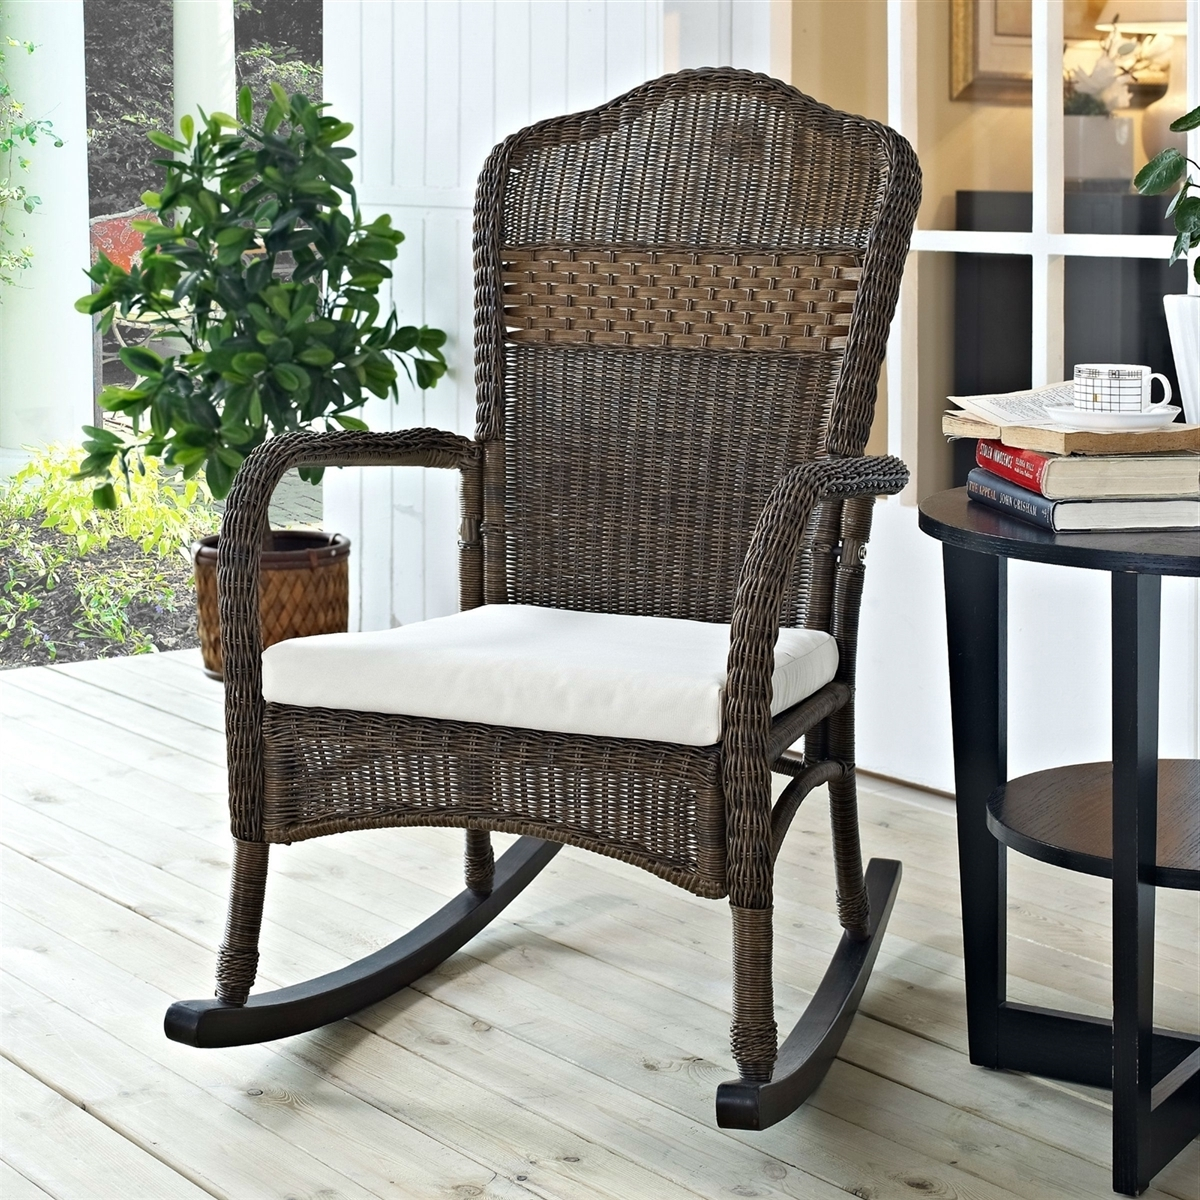 Outdoor Rattan Rockers Resin Rockers Sale Indoor Wicker With Regard To Favorite Rattan Outdoor Rocking Chairs (View 8 of 20)